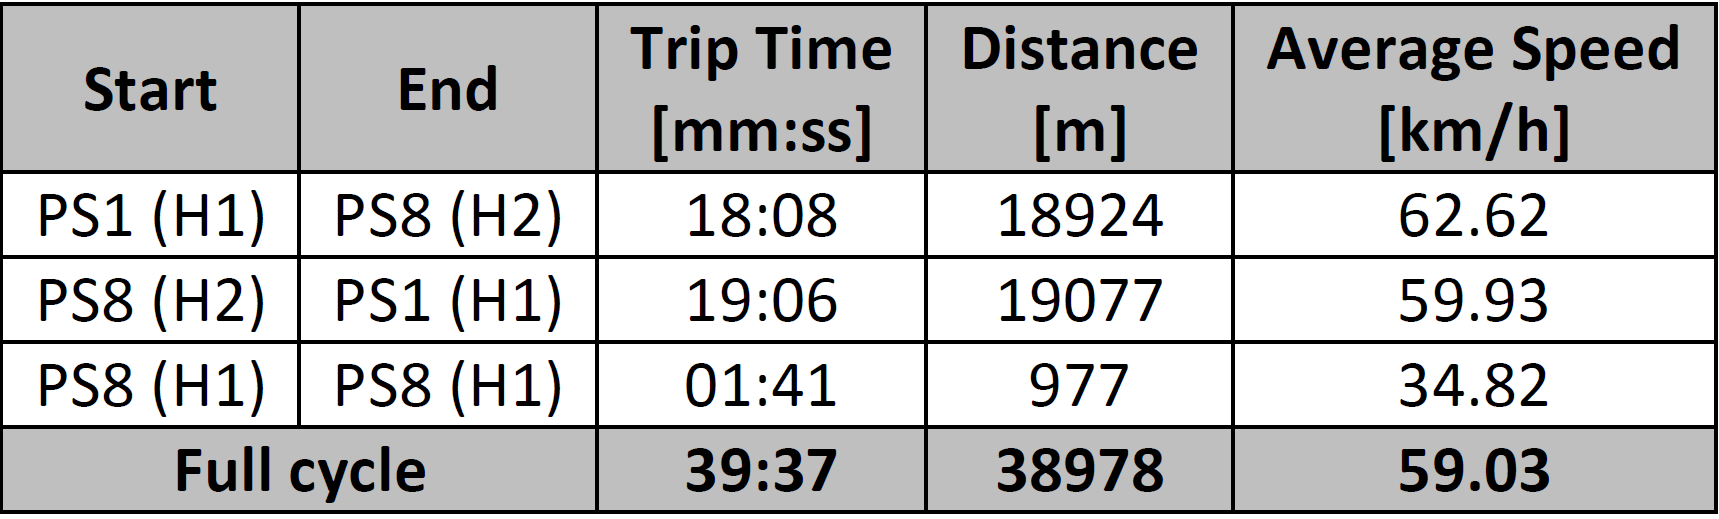 Travel time (and average speed) between each station with train performance determination studies